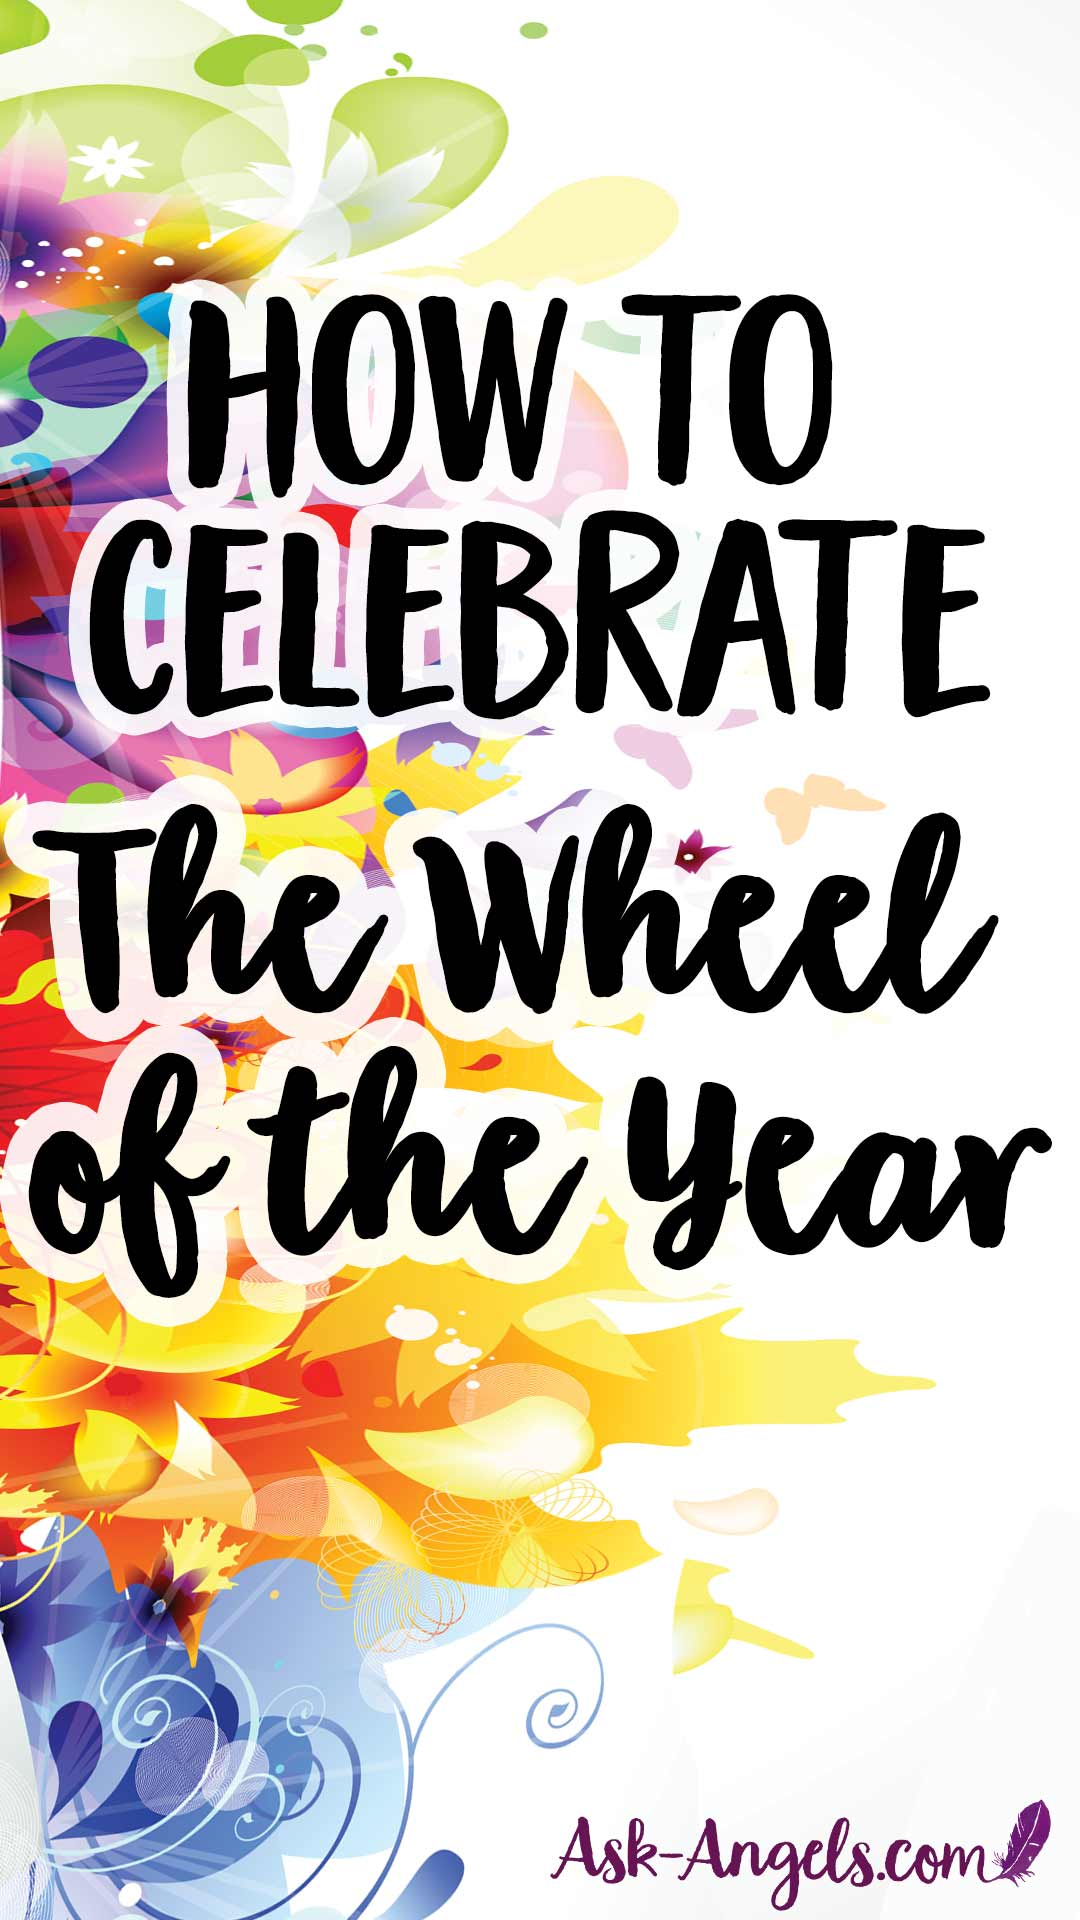 How to Celebrate the Wheel of the Year and honor Gaia through the changing seasons.